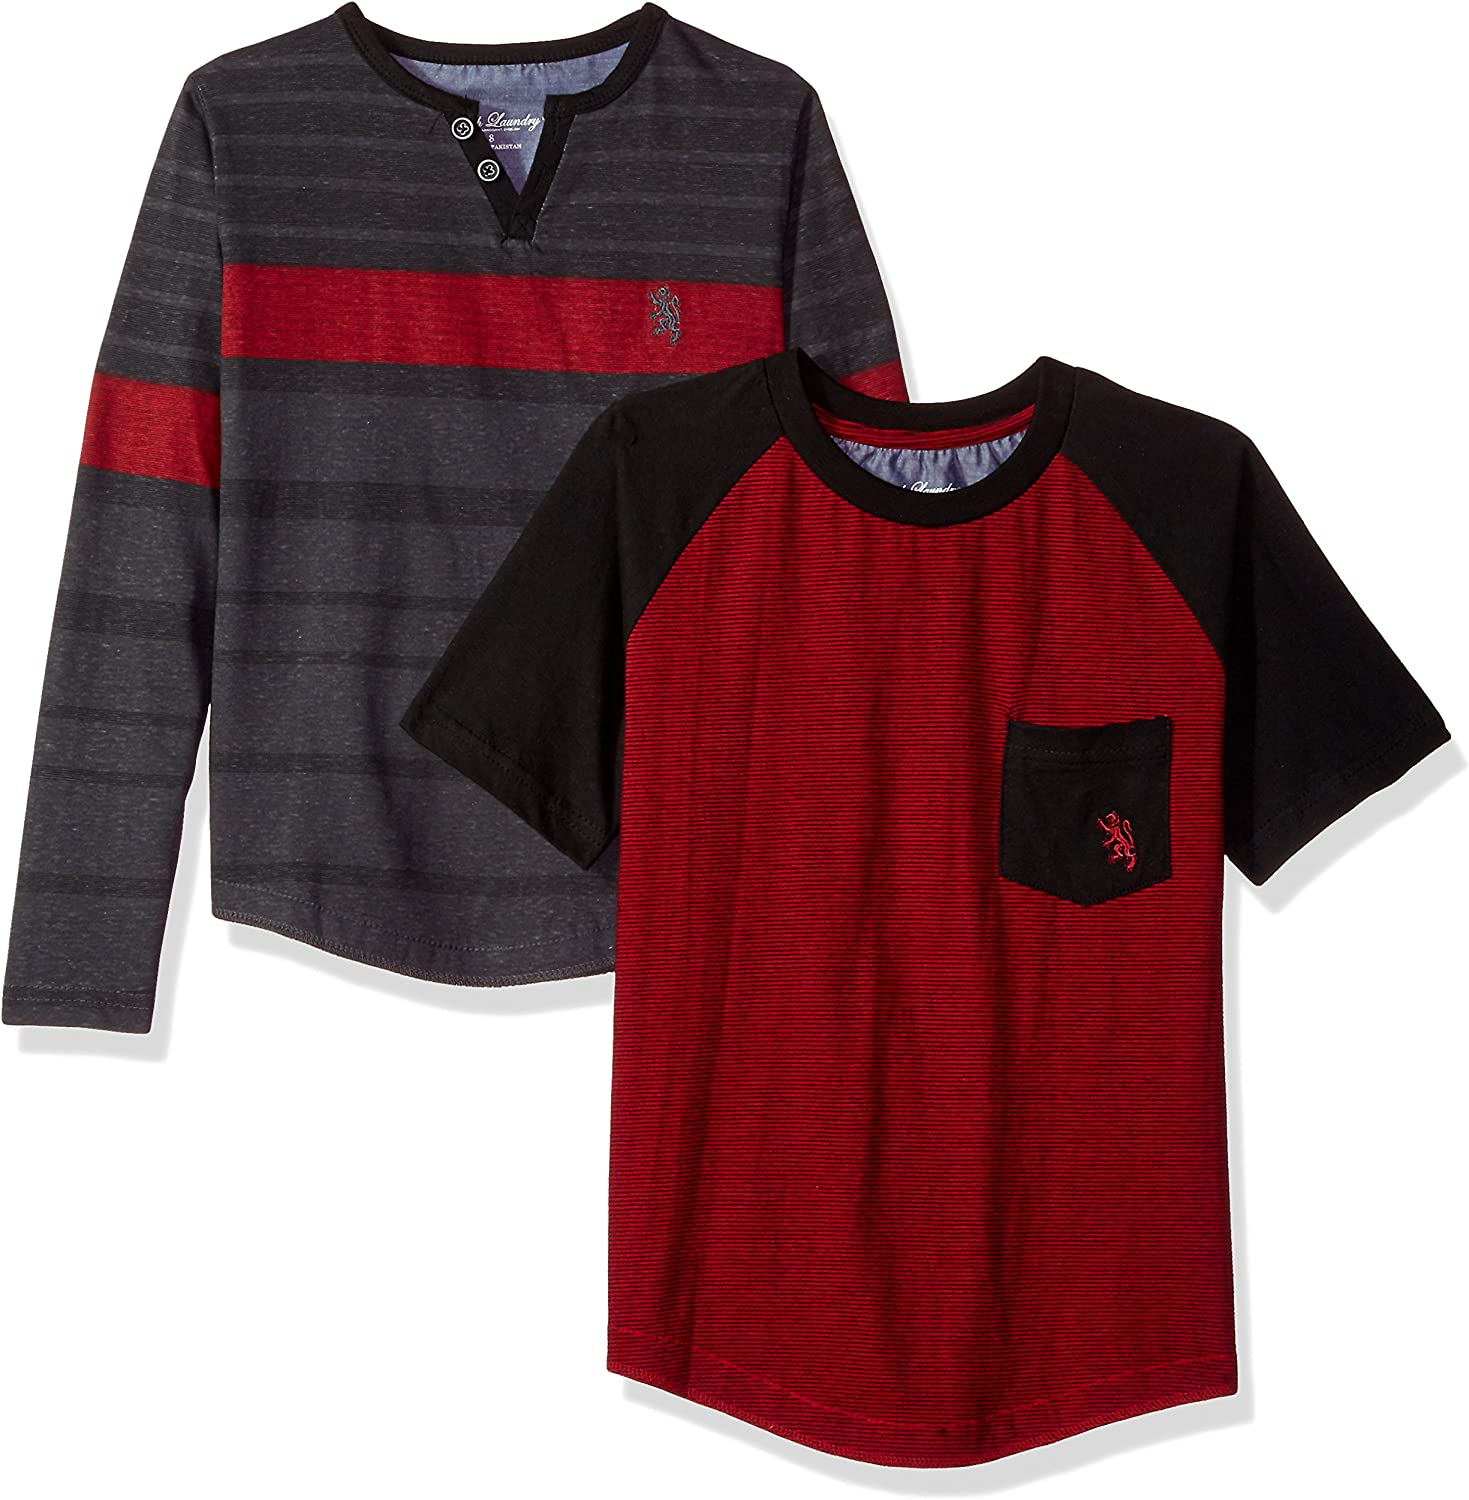 English Laundry Boys 2 Pack T-Shirt More Styles Available